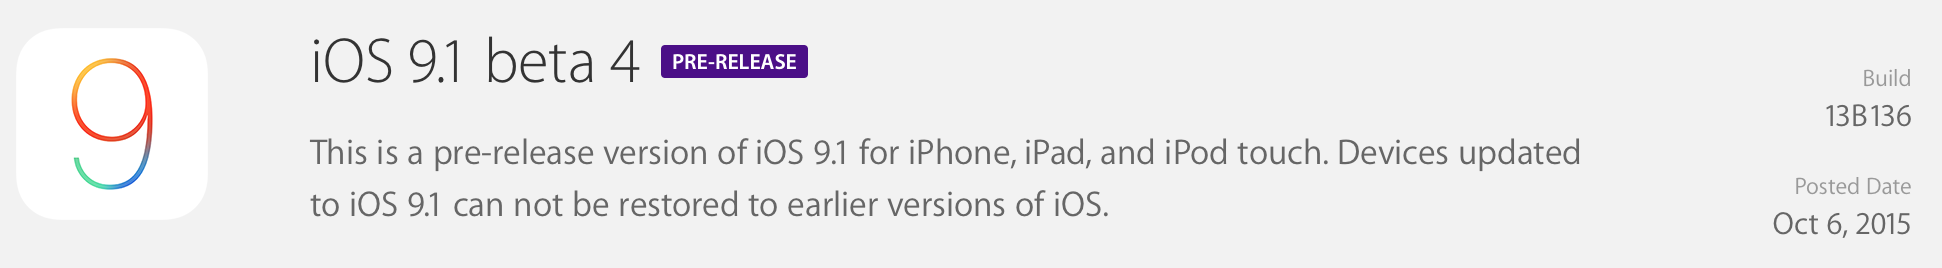 iOS 9 Beta Release Notes-bildschirmfoto-2015-10-06-um-21.01.53.png